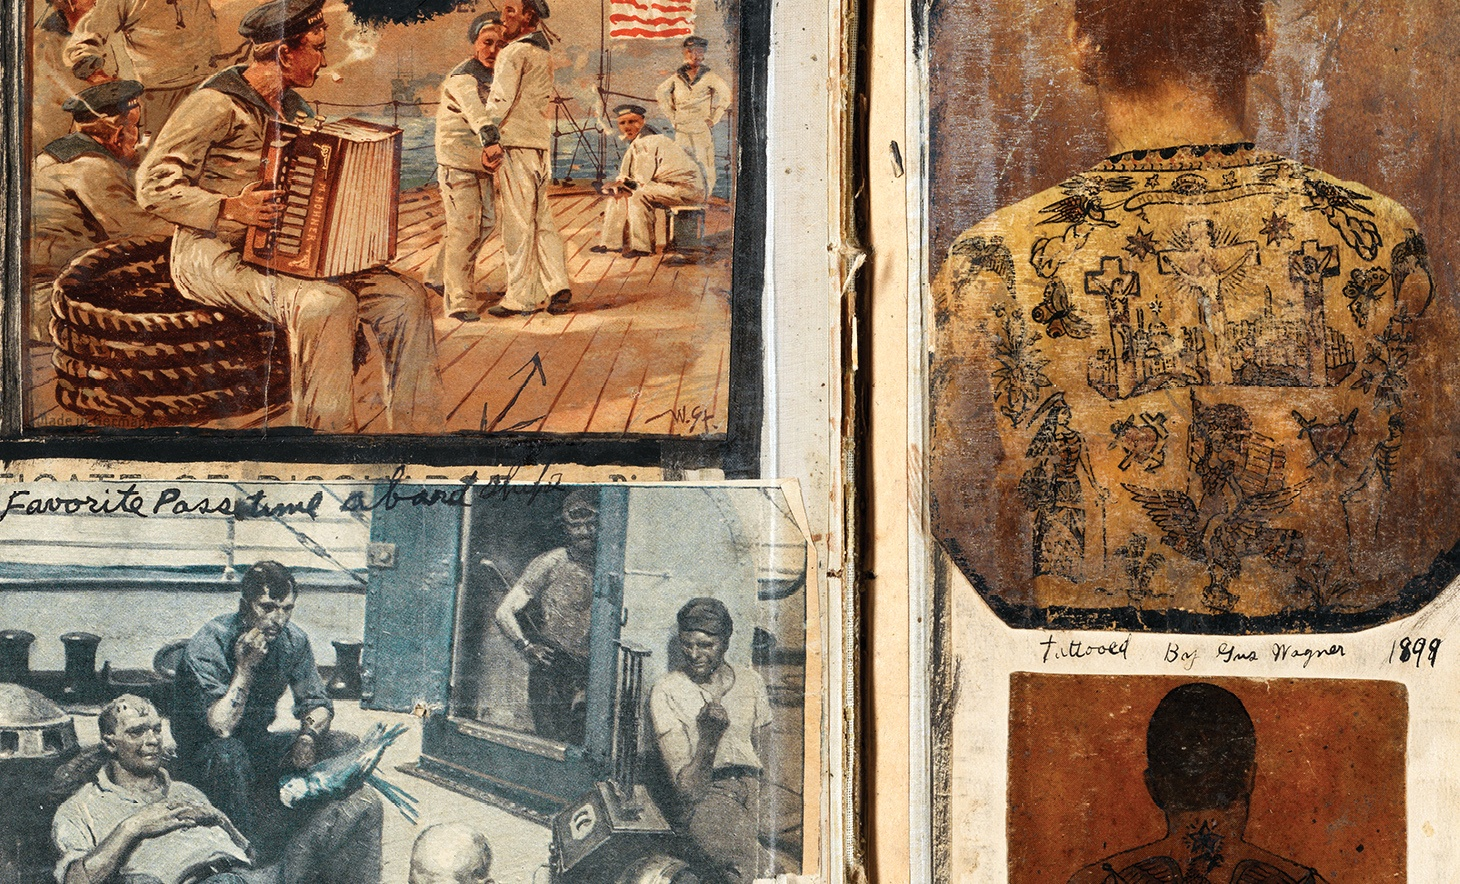 The Original Gus Wagner: The Maritime Roots of Modern Tattoo